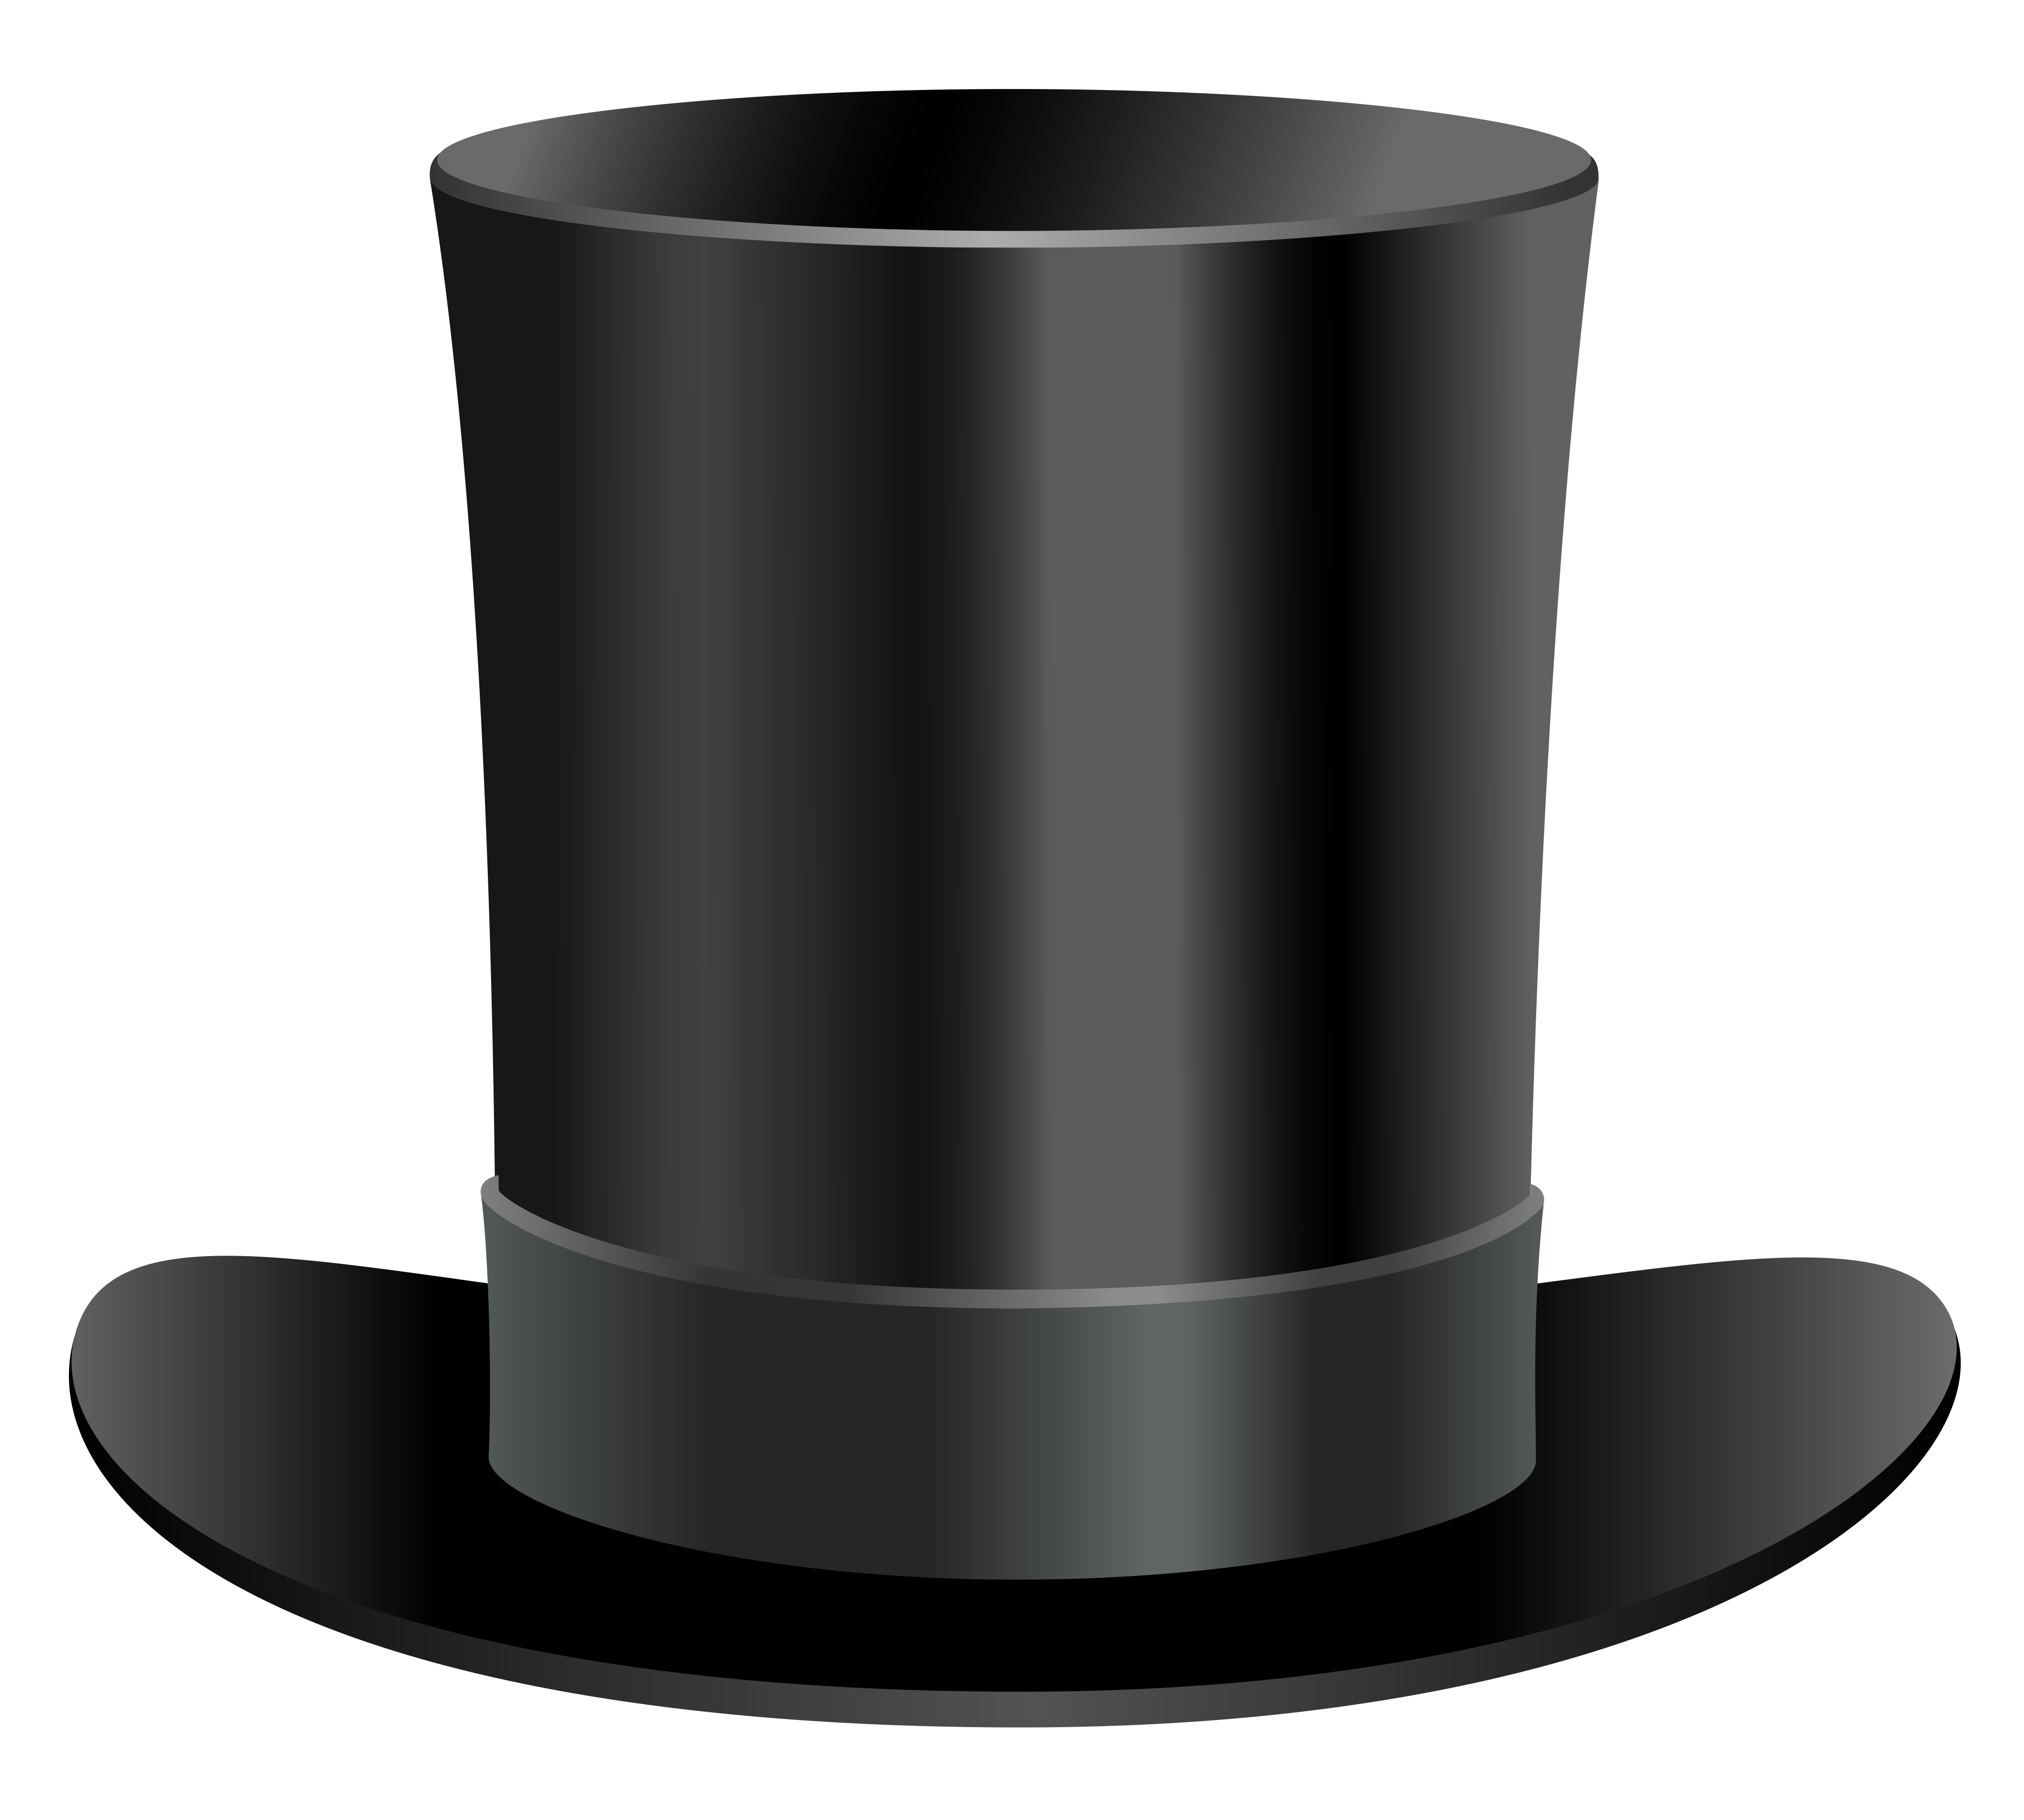 Black tophat & cane clipart banner black and white download Black Top Hat PNG Clipart | Gallery Yopriceville - High-Quality ... banner black and white download